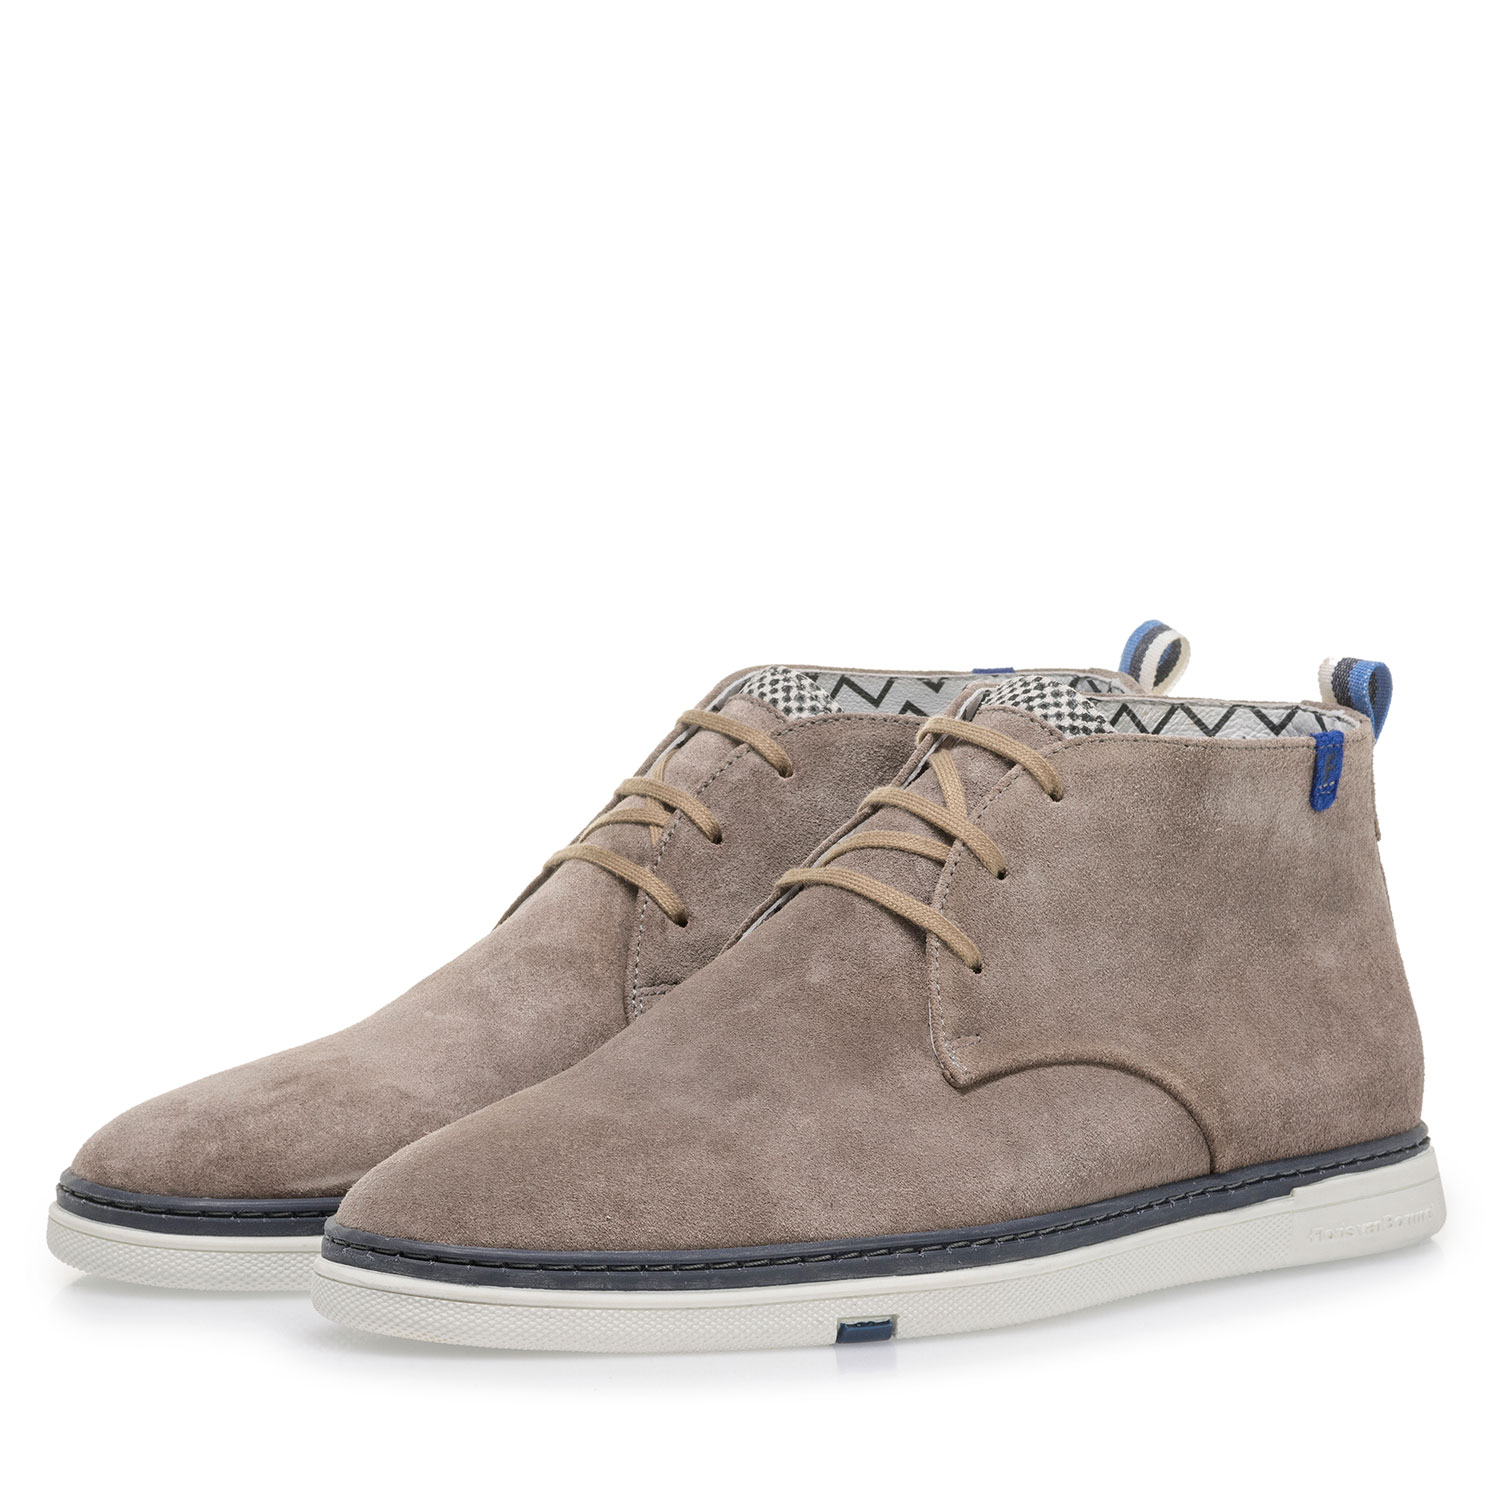 10502/08 - Taupe-coloured suede leather lace boot